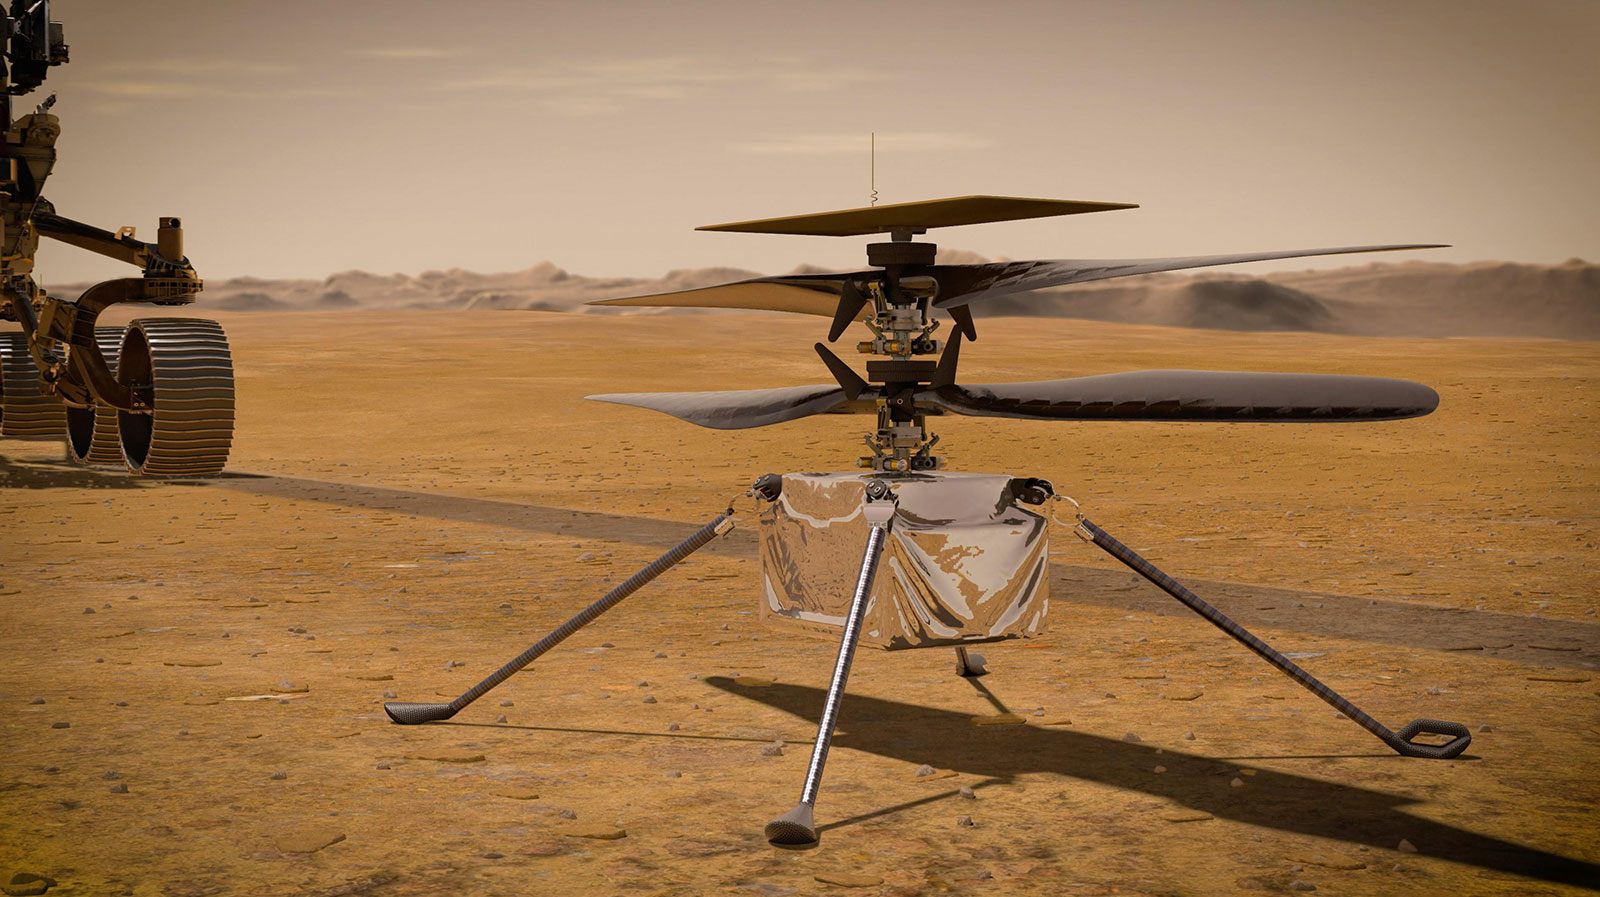 UNSPECIFIED: In this concept illustration provided by NASA, NASA's Ingenuity Mars Helicopter stands on the Red Planet's surface as NASA's Mars 2020 Perseverance rover (partially visible on the left) rolls away. NASA's Perseverance (Mars 2020) rover will store rock and soil samples in sealed tubes on the planet's surface for future missions to retrieve in the area known as Jezero crater on the planet Mars. A key objective for Perseverance's mission on Mars is astrobiology, including the search for signs of ancient microbial life. The rover will characterize the planet's geology and past climate, paving the way for human exploration of the Red Planet, and be the first mission to collect and cache Martian rock and regolith. (Photo illustration by NASA via Getty Images)